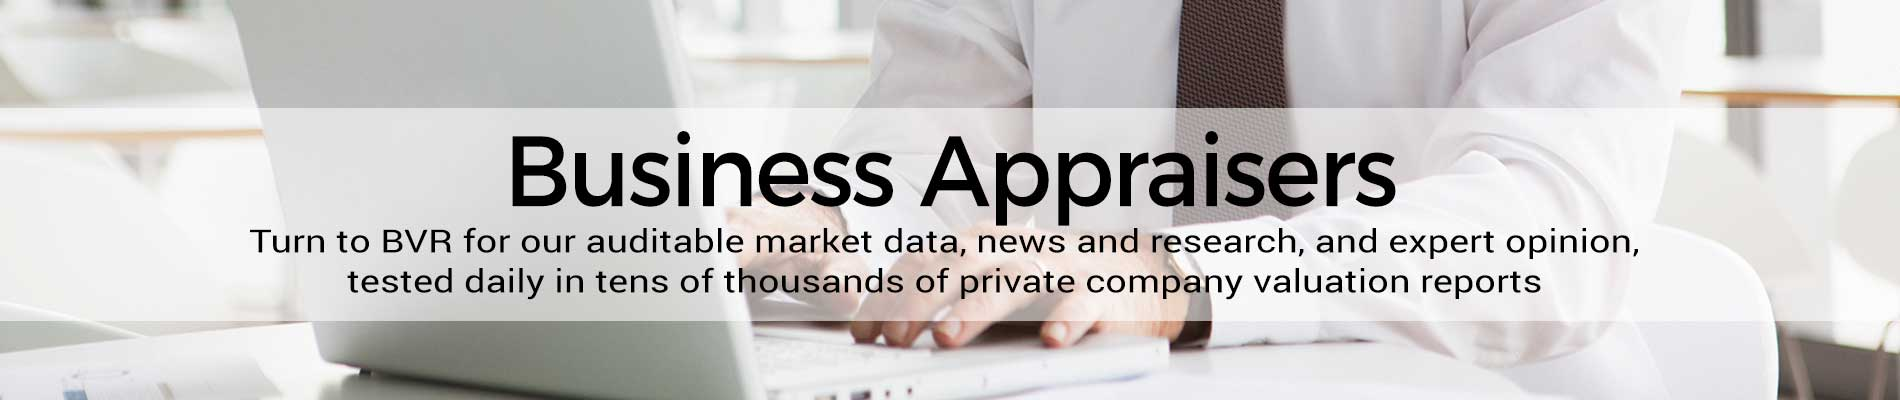 Business Appraisers